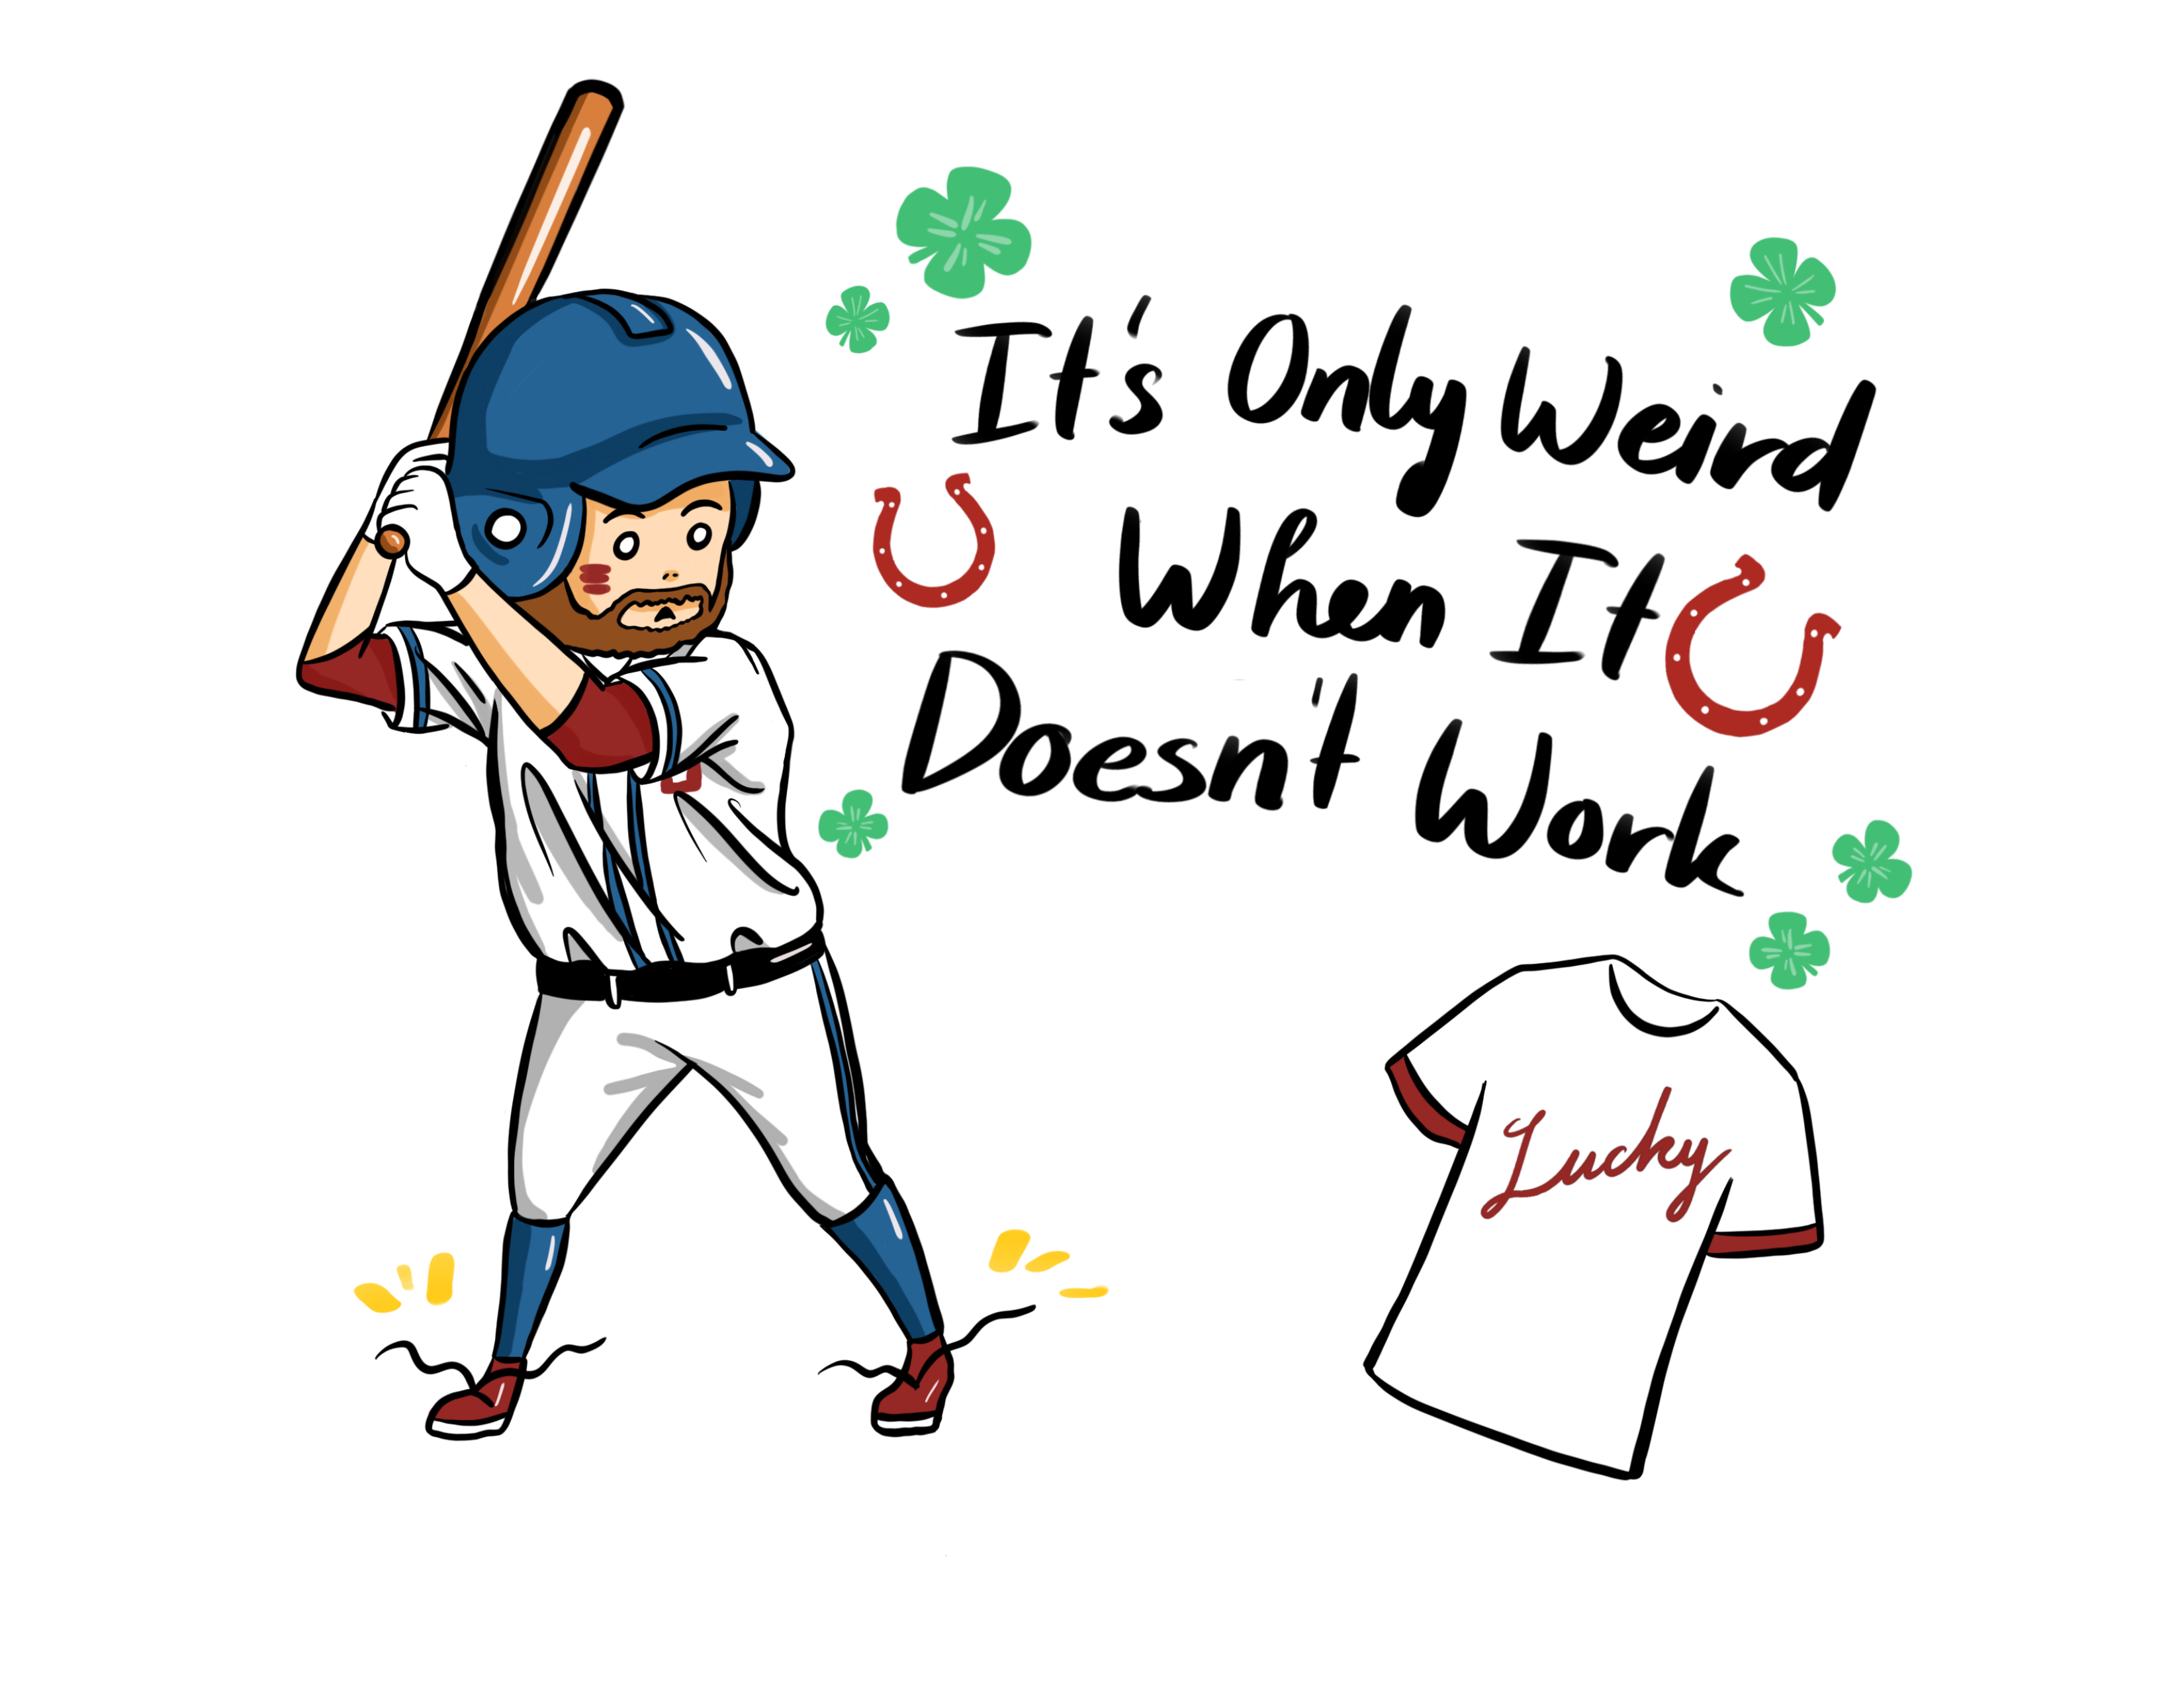 Illustration shows baseball player next to the words,